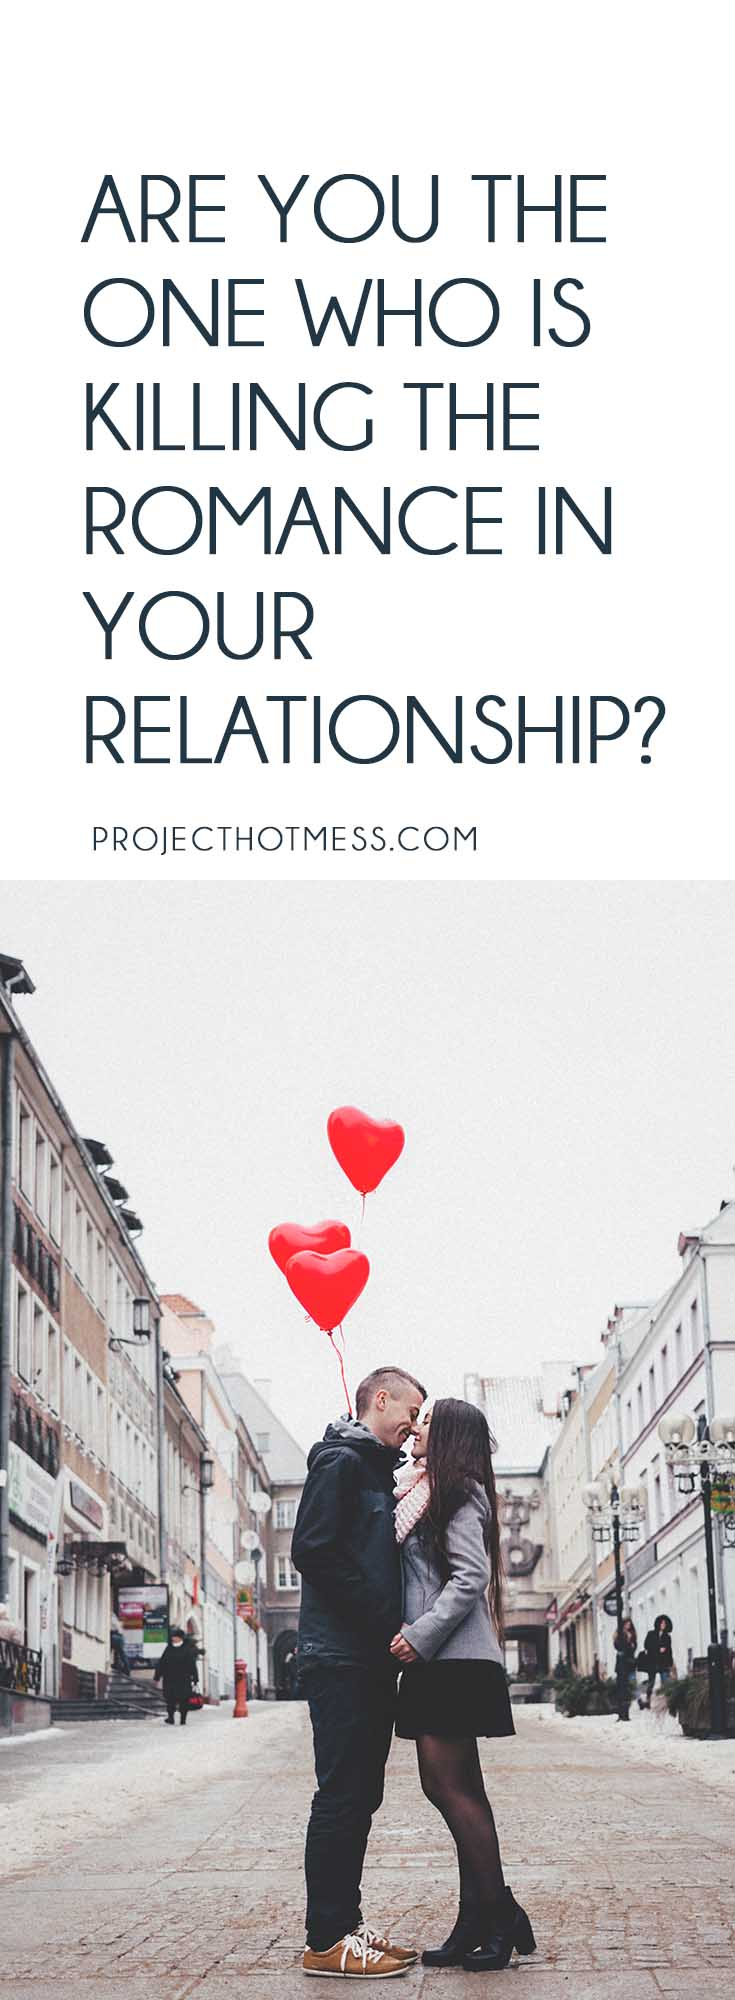 Do you think your partner is romantic? Perhaps he doesn't buy you bunches of flowers, but is he killing the romance or are you? Do you know what romance is? Relationships   Marriage   Partner   Marriage Advice   Marriage Goals   In Love   Love   Marriage Problems   Spice Up Your Marriage   Marriage Ideas   Happy Marriage   Relationship Goals   Relationship Advice   Relationship Tips   Relationship Problems   Romance   How To Be Romantic   My Husband Isn't Romantic